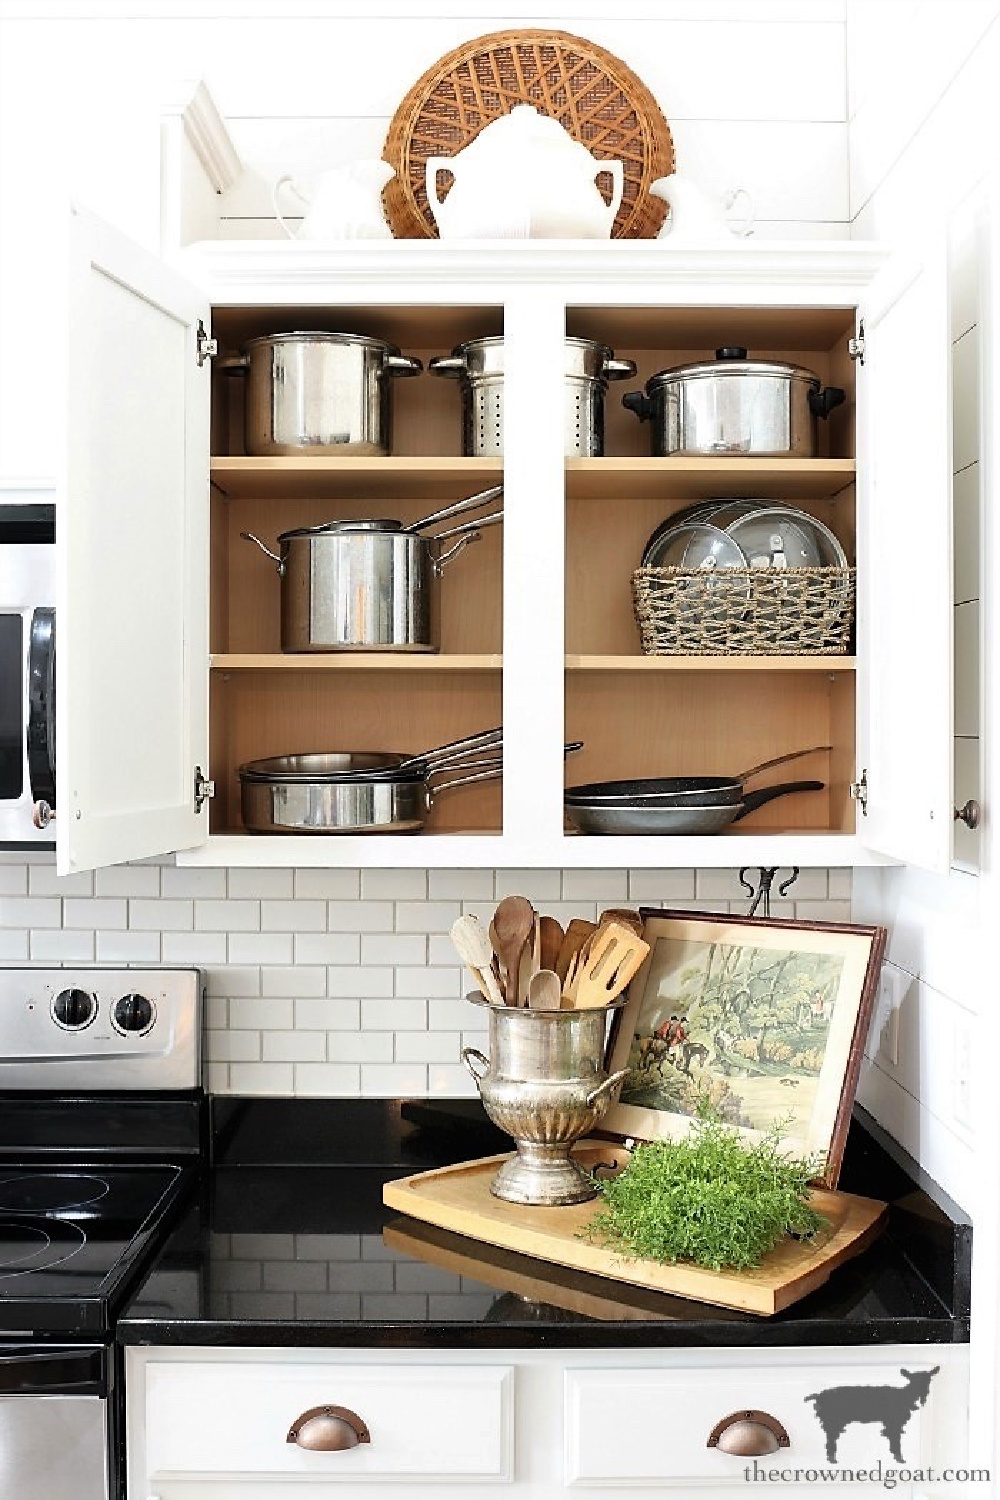 5 Key Spaces to Organize Before School Starts-Kitchen Cabinets-The Crowned Goat